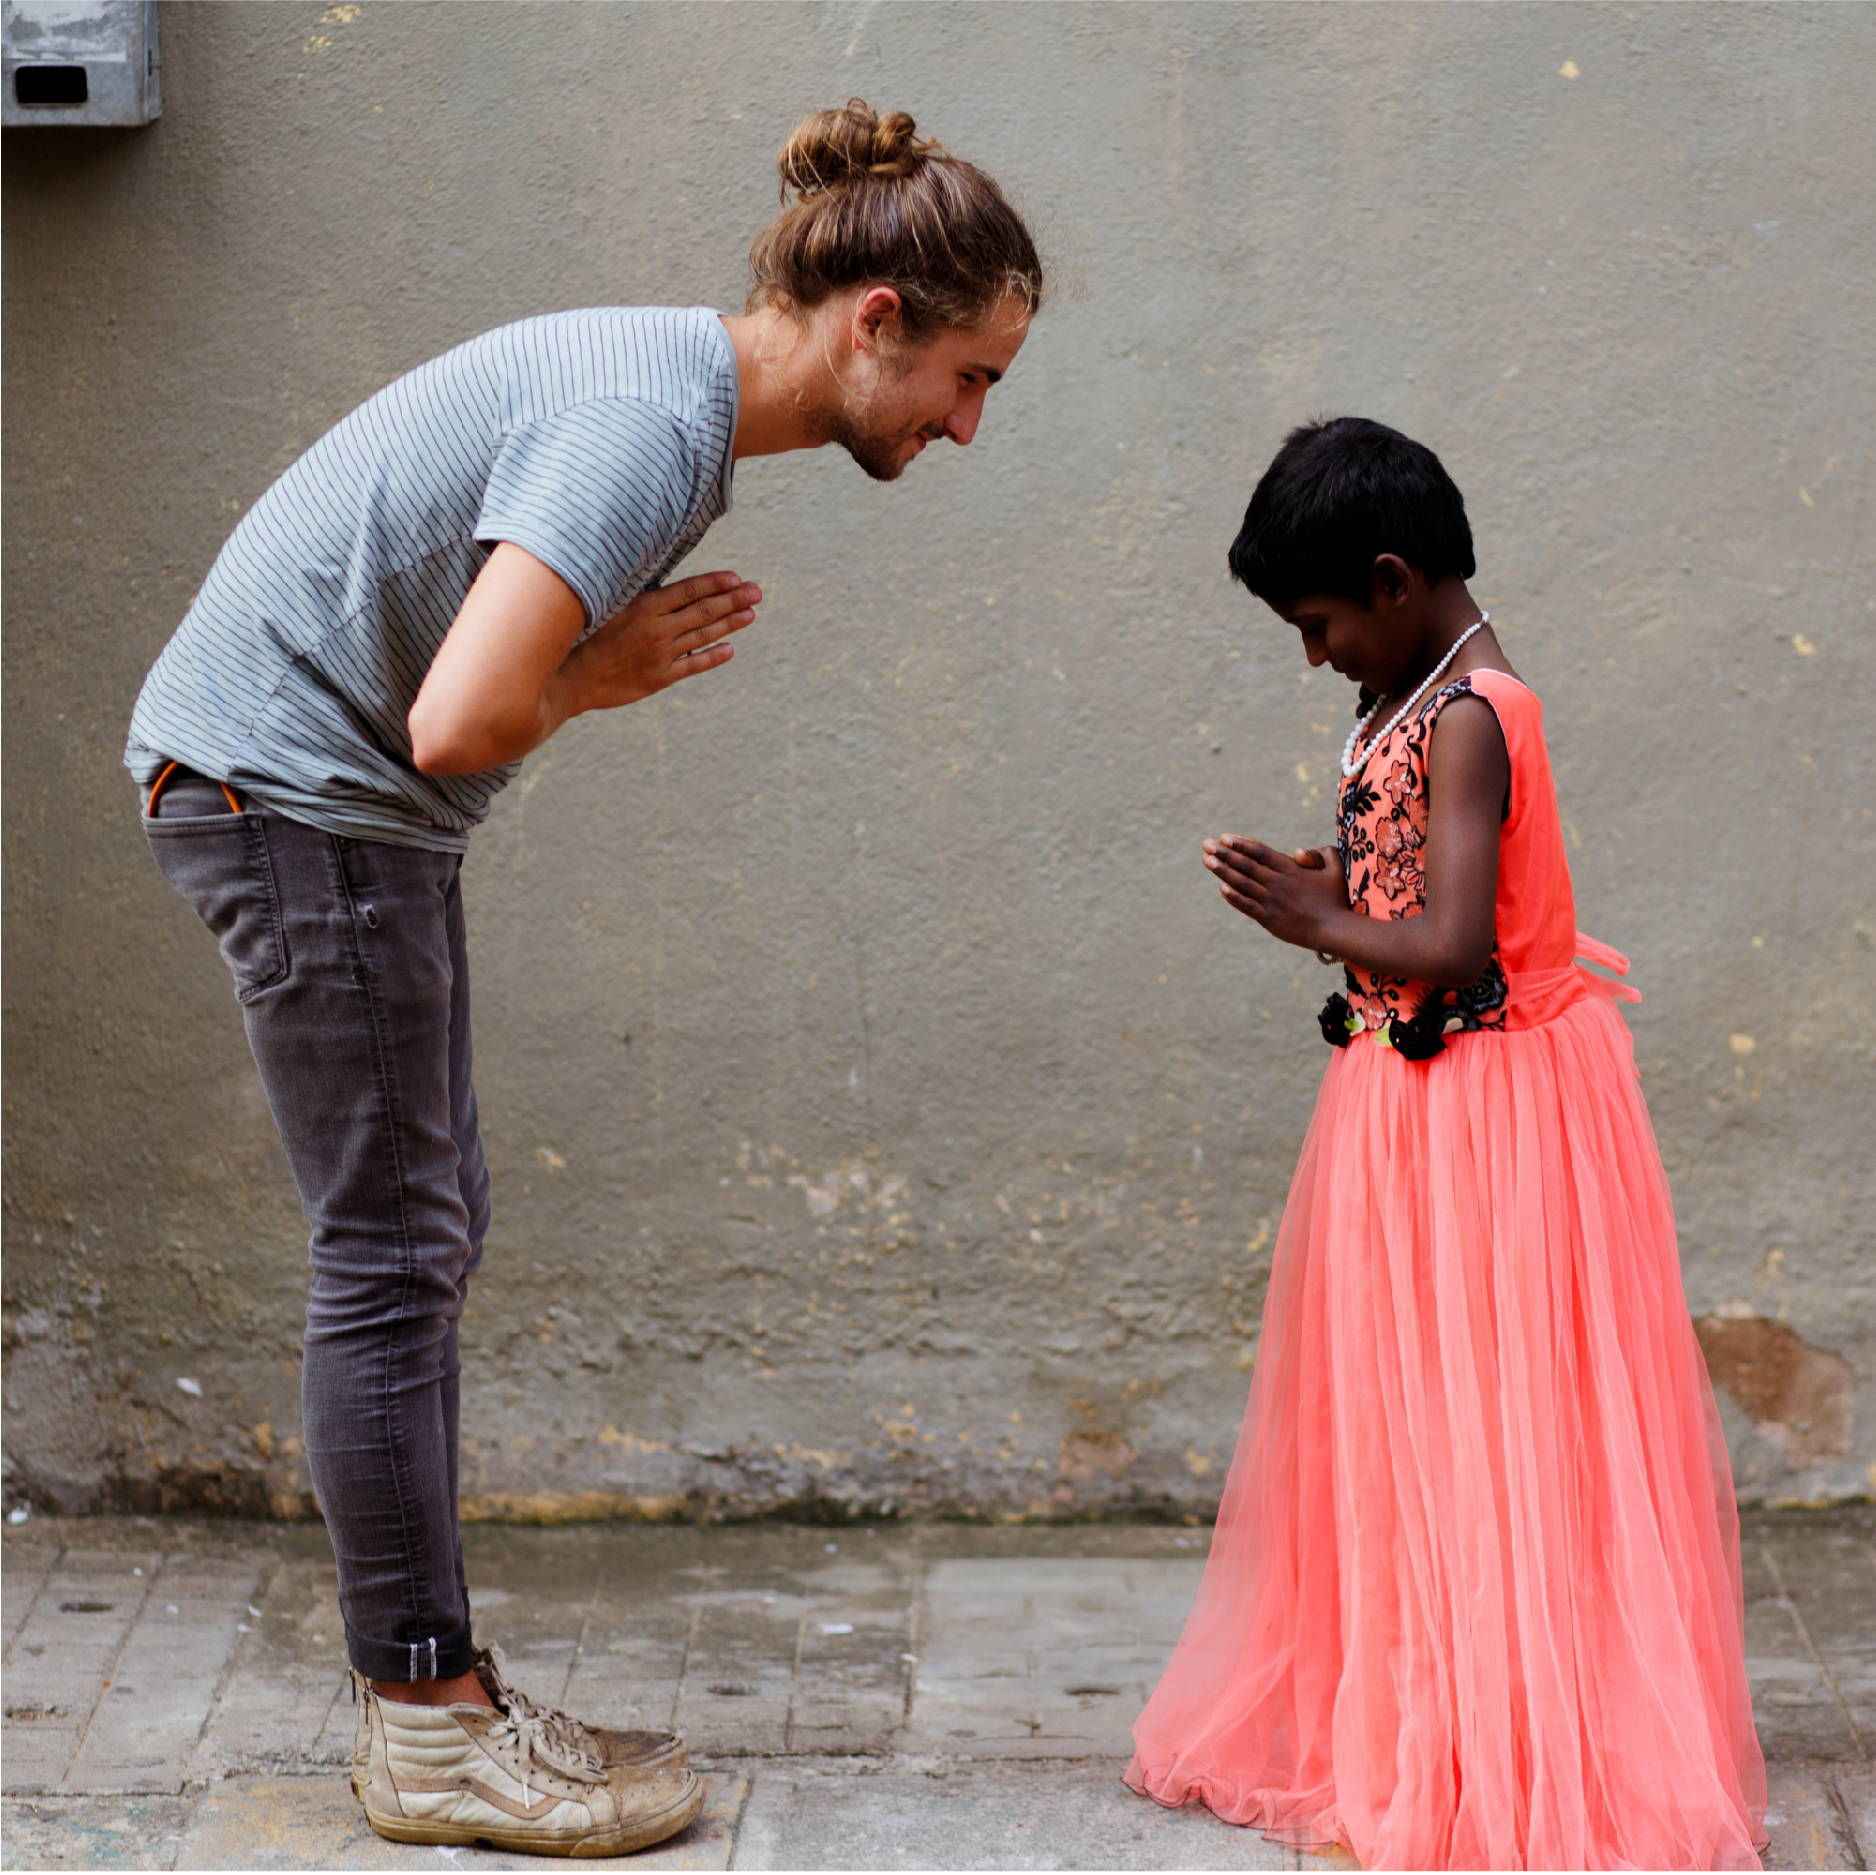 a white male in a green shirt and black pants and a young Indian girl in a pink dress bow towards each other in namaste